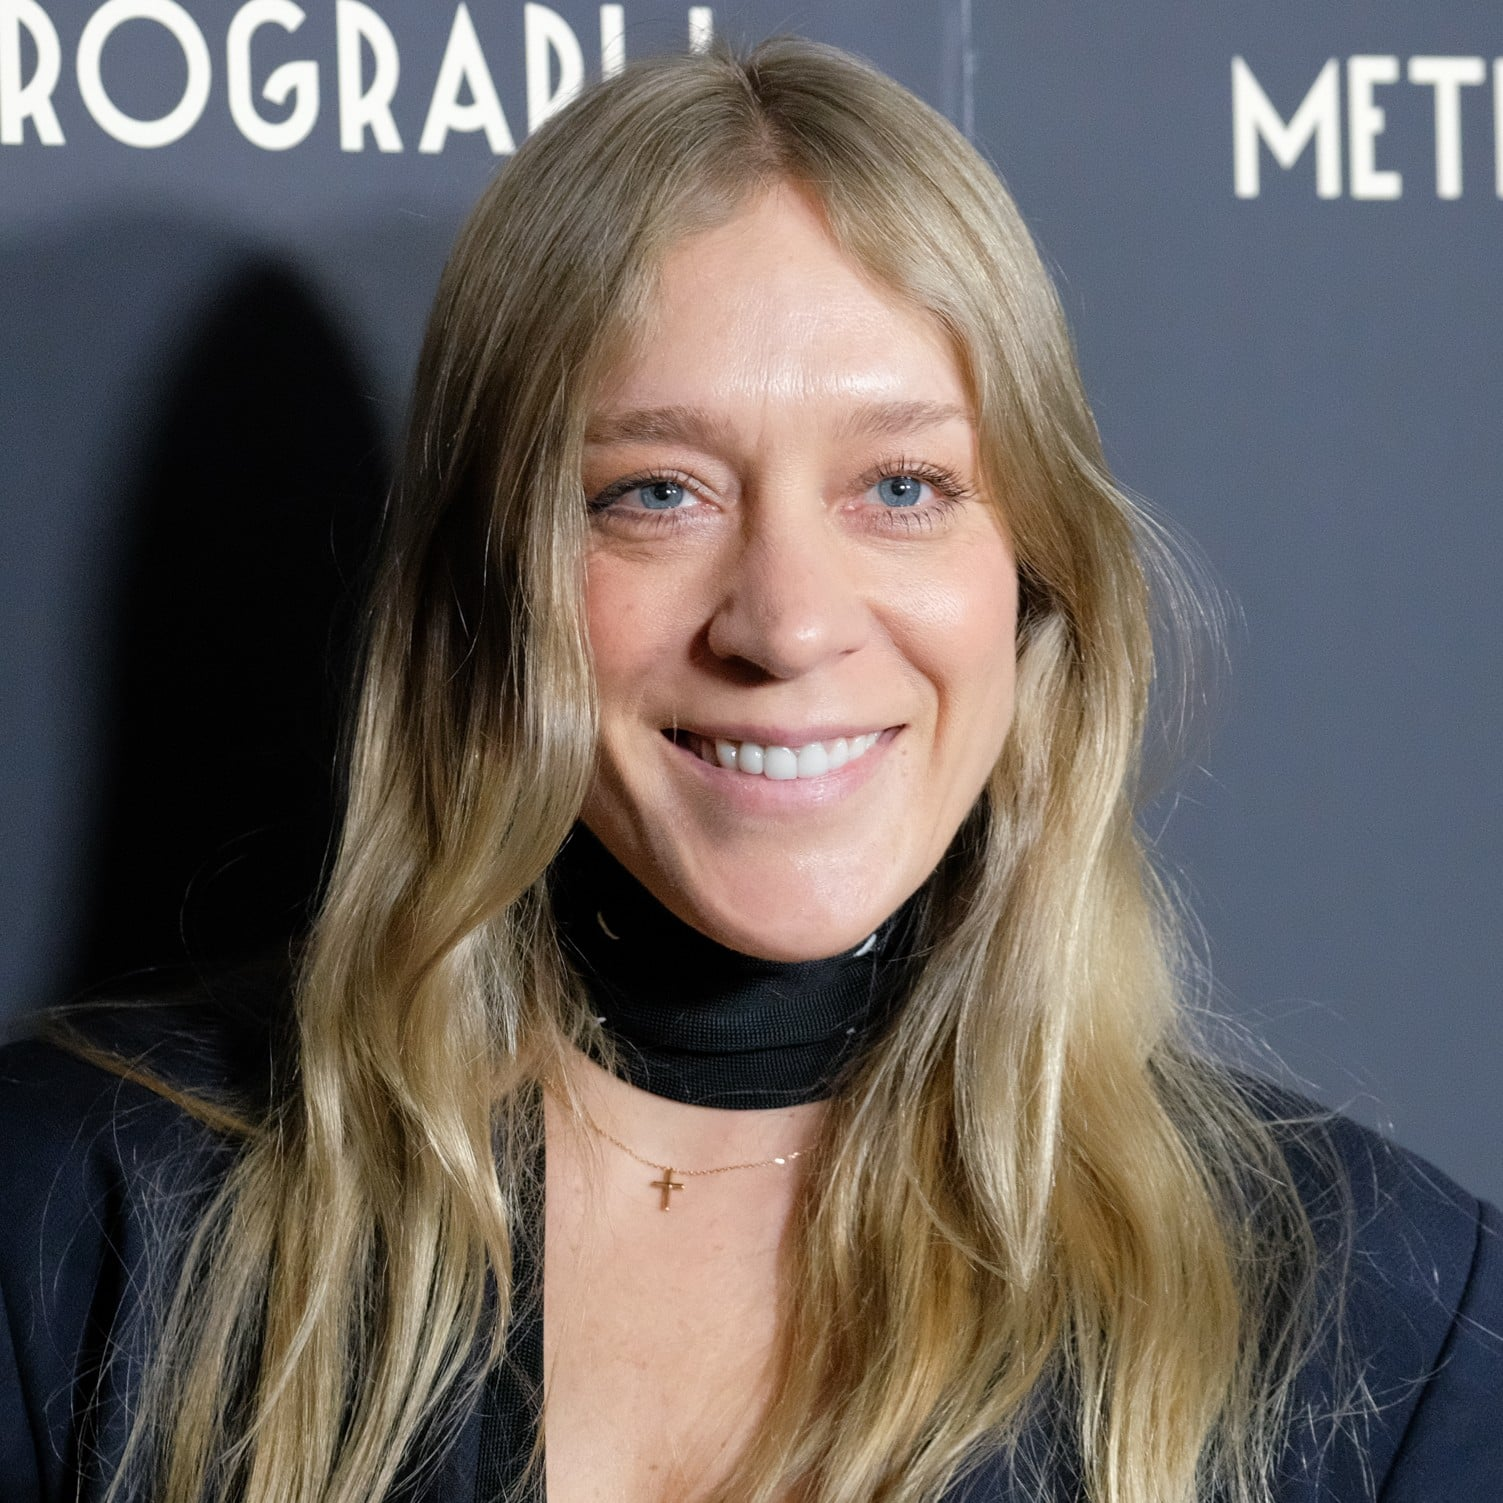 Chloe Sevigny nude photos 2019